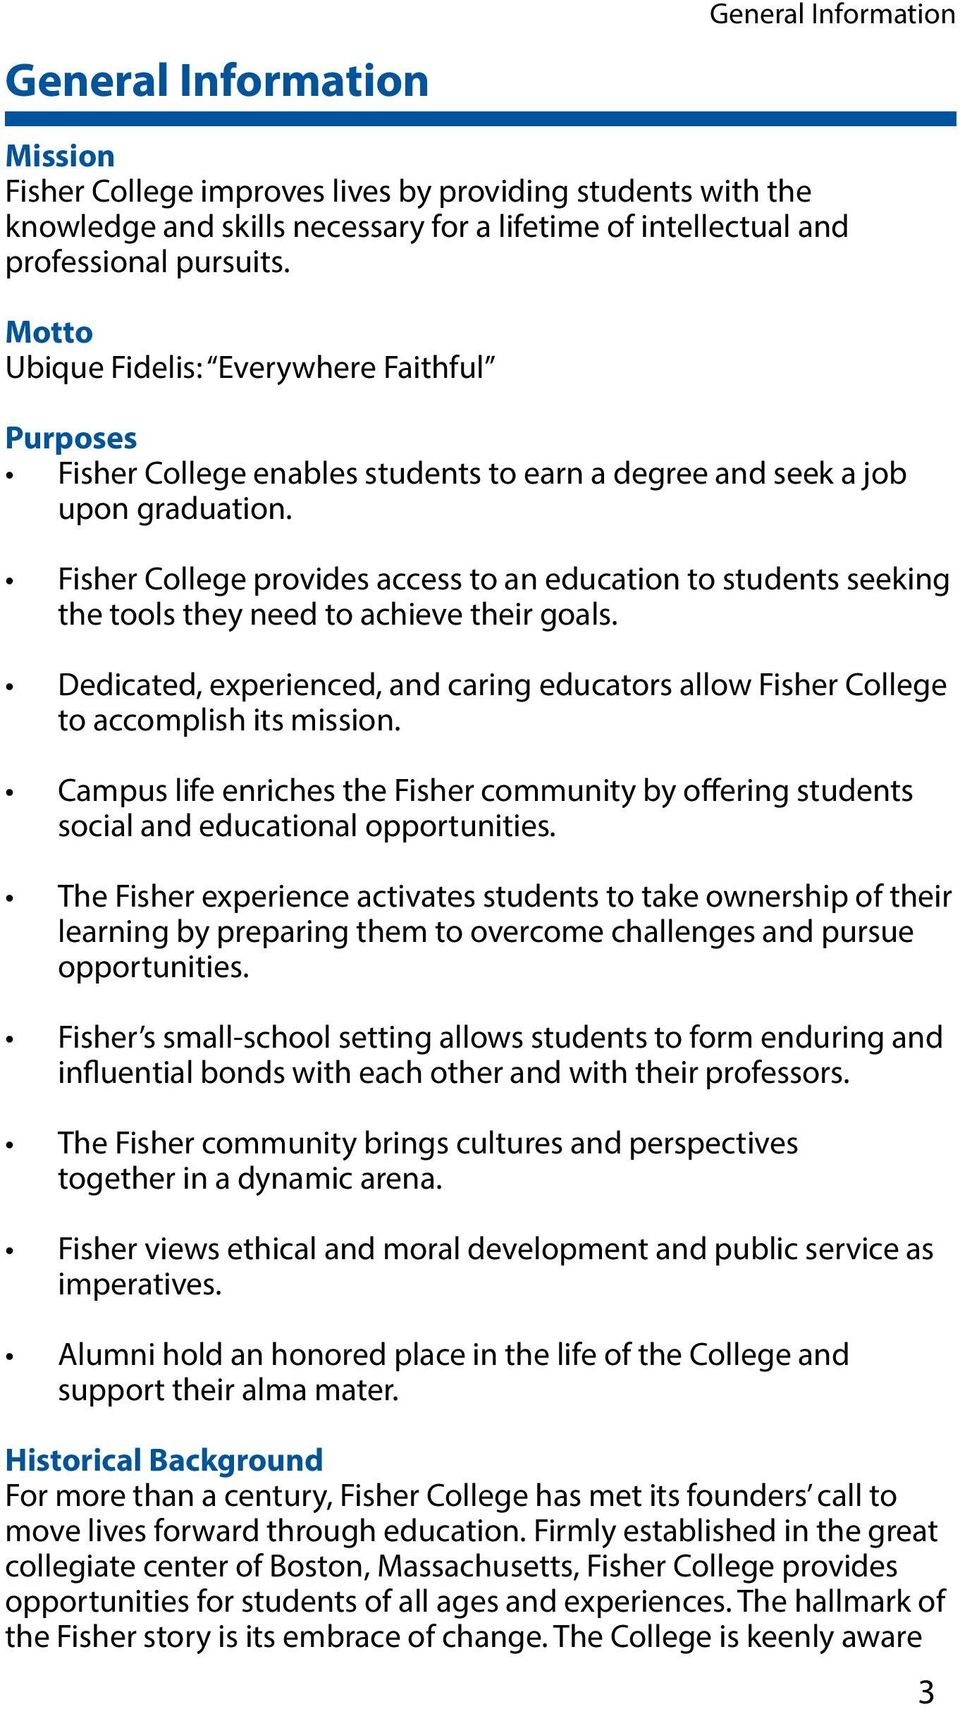 Fisher College provides access to an education to students seeking the tools they need to achieve their goals.